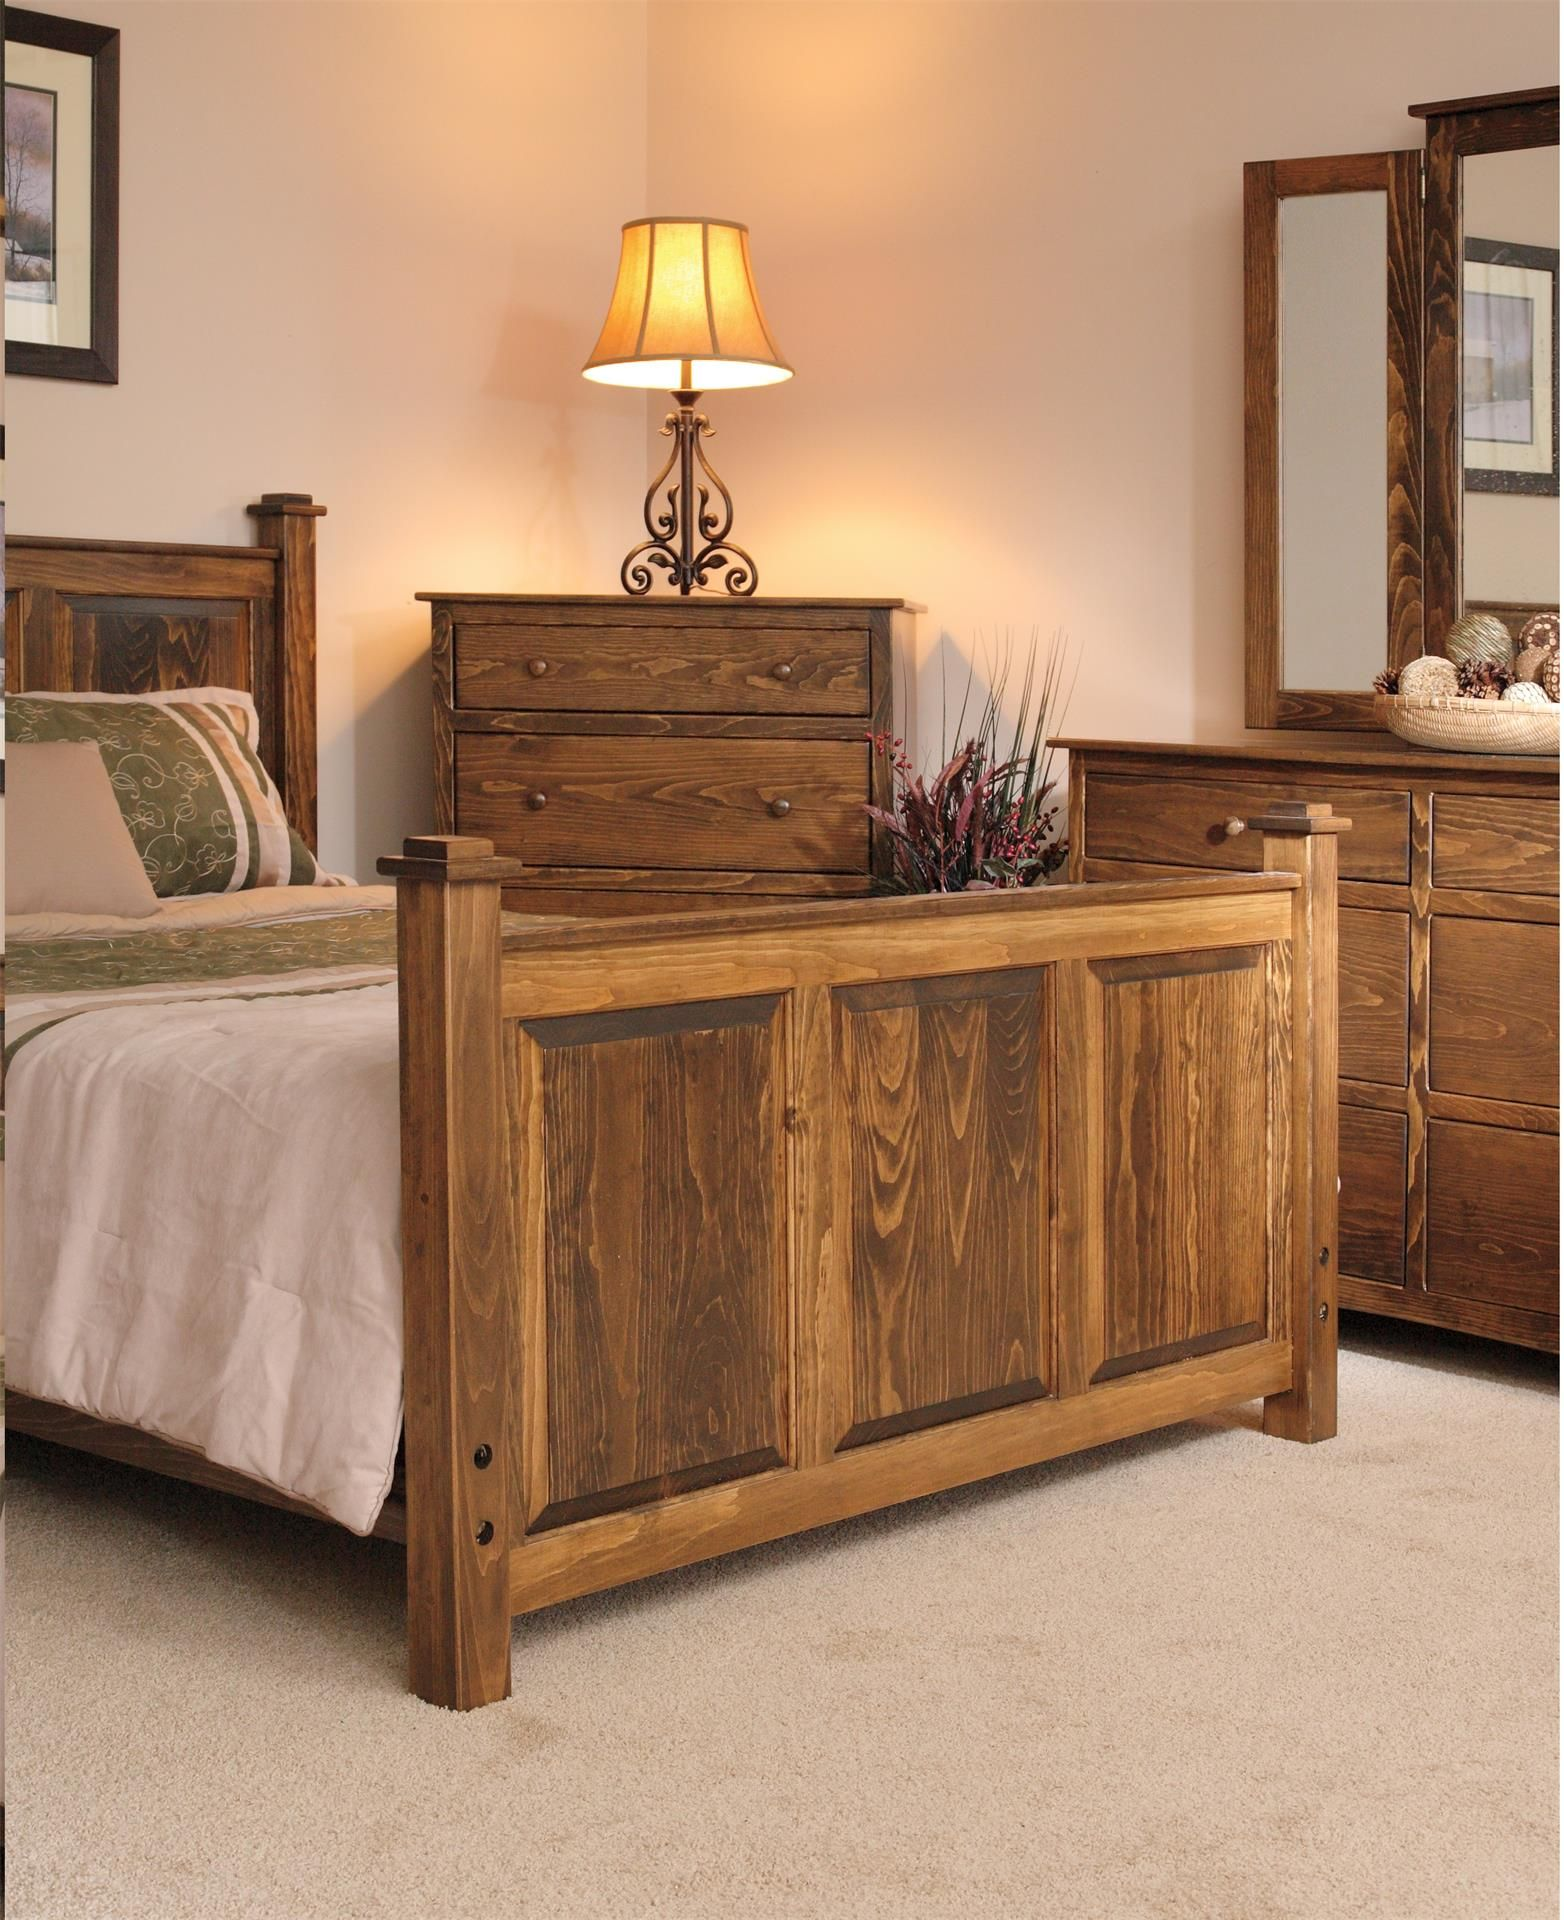 Pine Wood Bedroom Furniture Photos And Video Wylielauderho Pine Wood Bedroom Furniture Furnitureidea With Images Wood Bedroom Sets Pine Bedroom Furniture Wood Bedroom